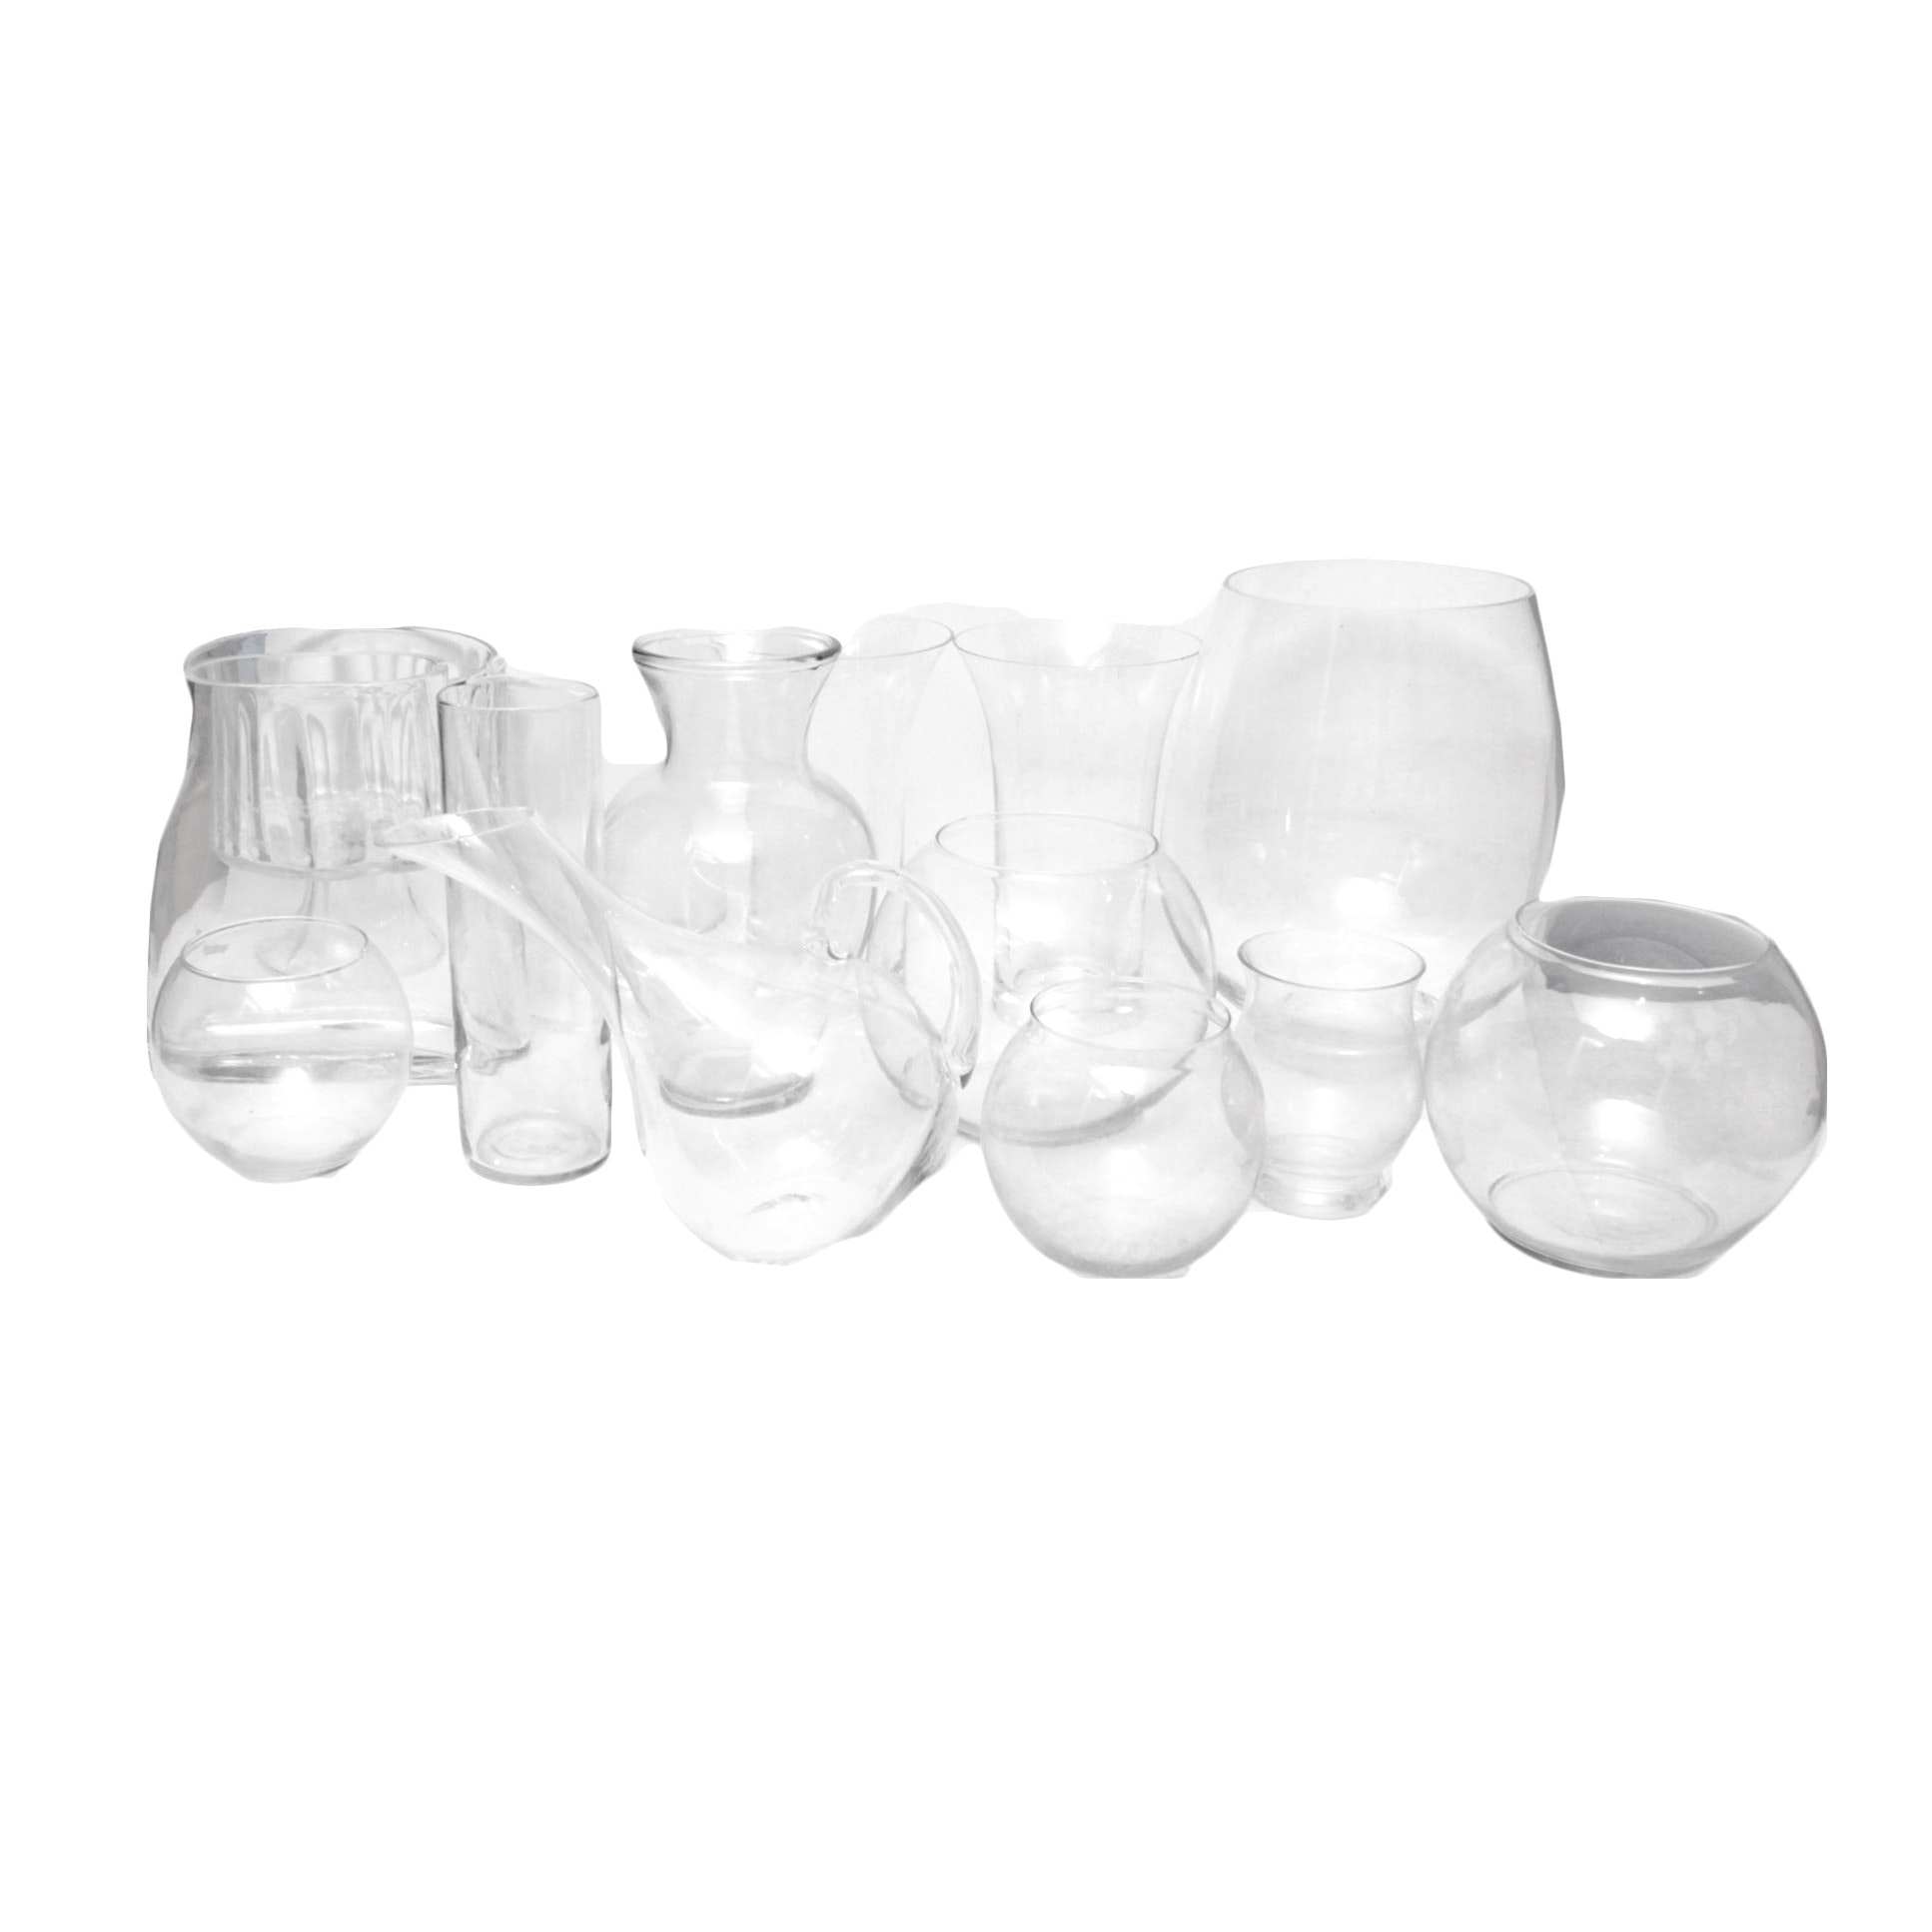 Glass Vases and Pitcher